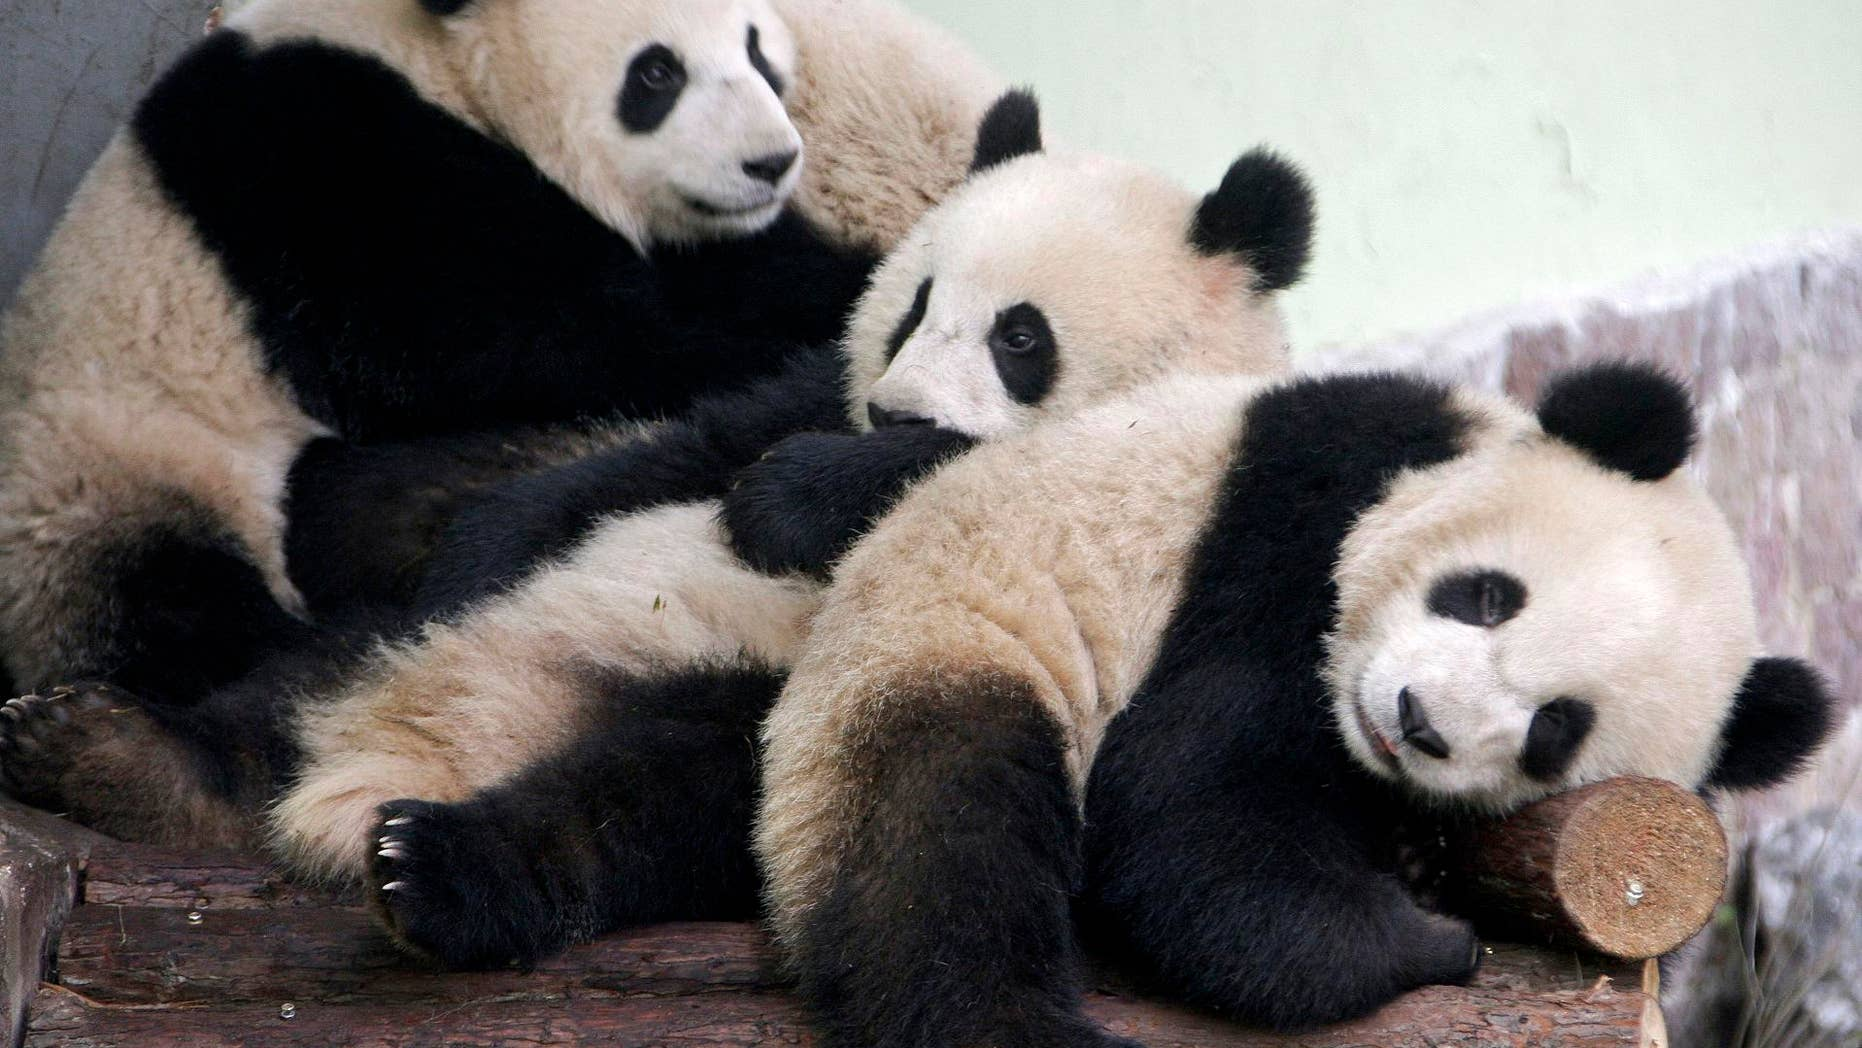 In this photo taken Wednesday, Jan. 20, 2010, panda cubs from the Wolong Giant Panda Reserve Center in Sichuan are seen in a Shanghai zoo, in China. Ten giant panda cubs, all born after the deadly earthquake that hit China's Sichuan province in 2008, were sent to Shanghai to go on display during this year's World Expo.